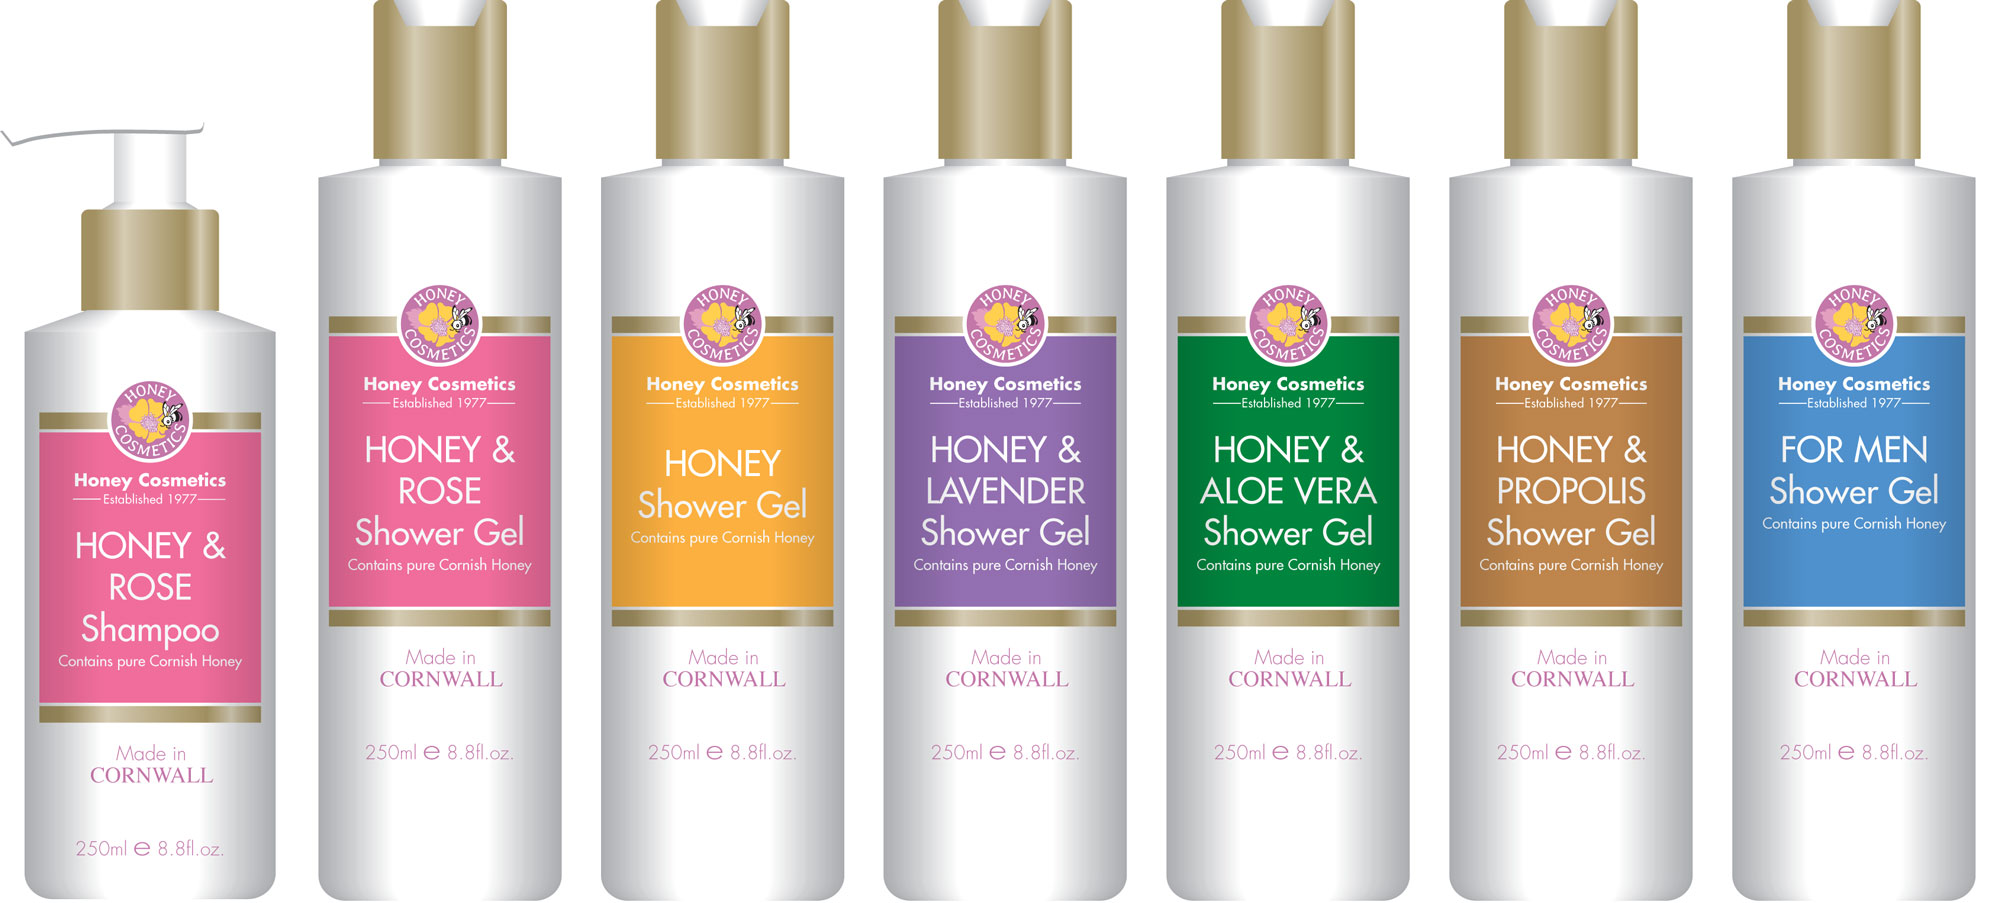 Honey Cosmetics Packaging Design